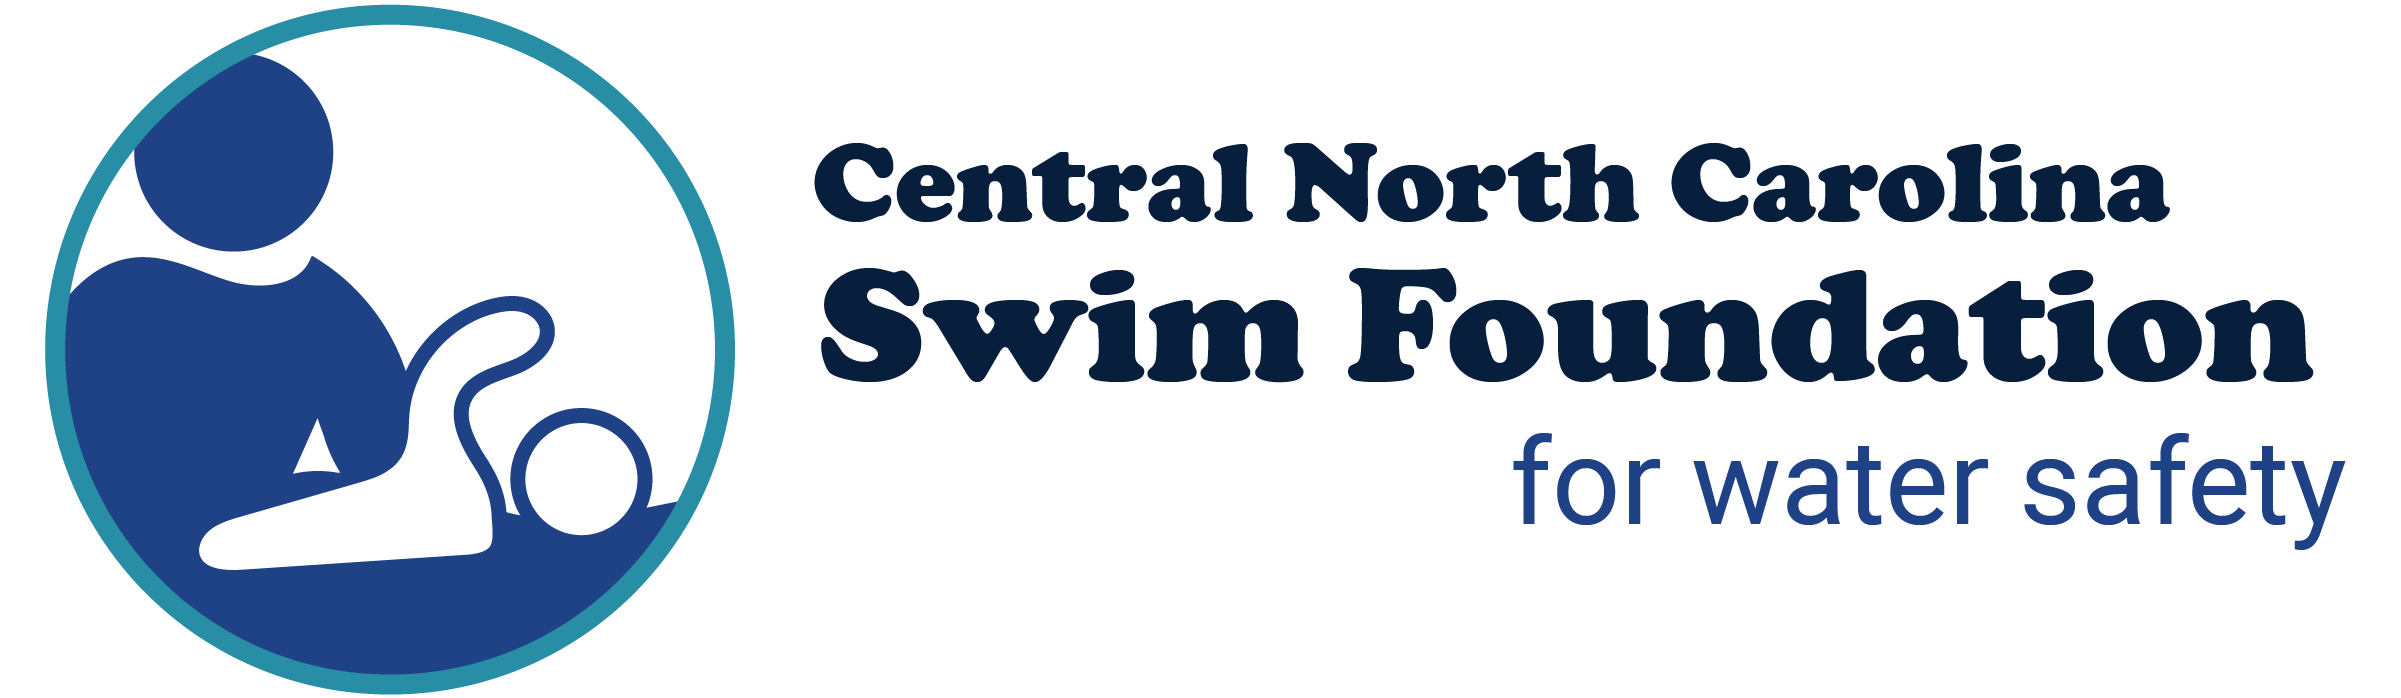 Central North Carolina Swim Foundation